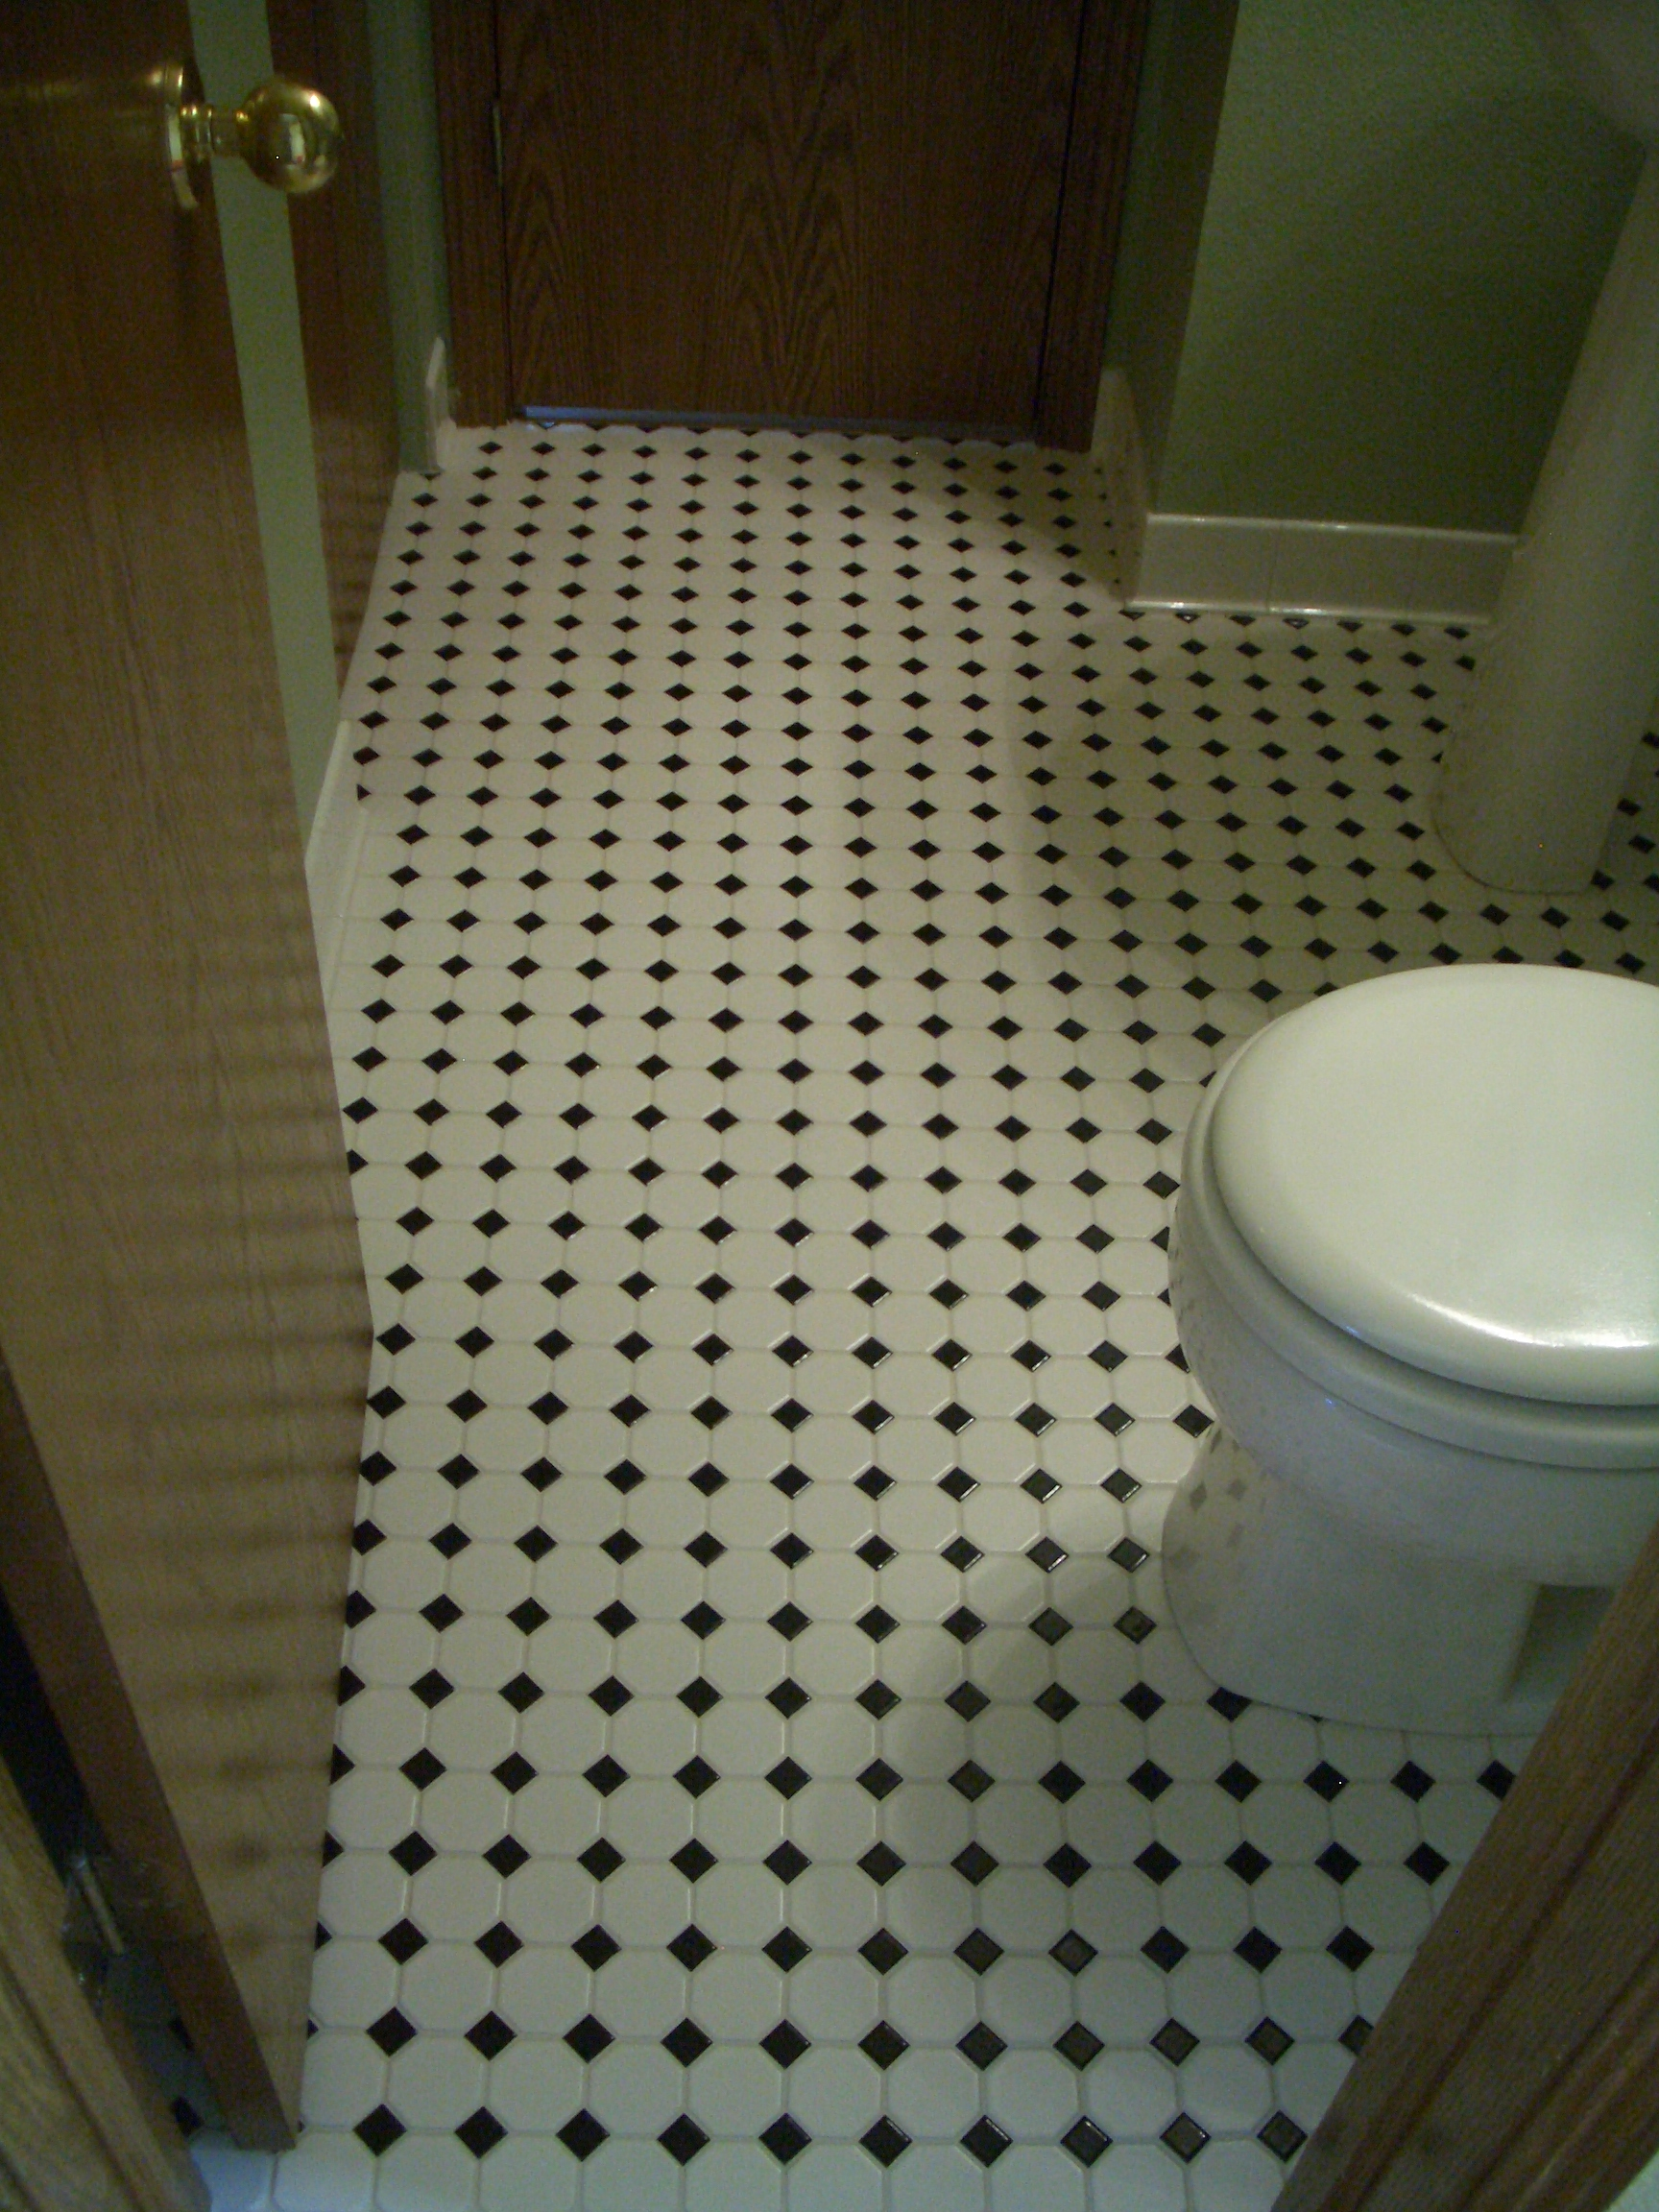 tiles-tiled-wood-hexagon-companies-installing-ideas-vinyl-black-toilet-exterior-decorative-coverings-patterned-a-leave-lasting-impressions-for-bathroom-floor-tile-ideas